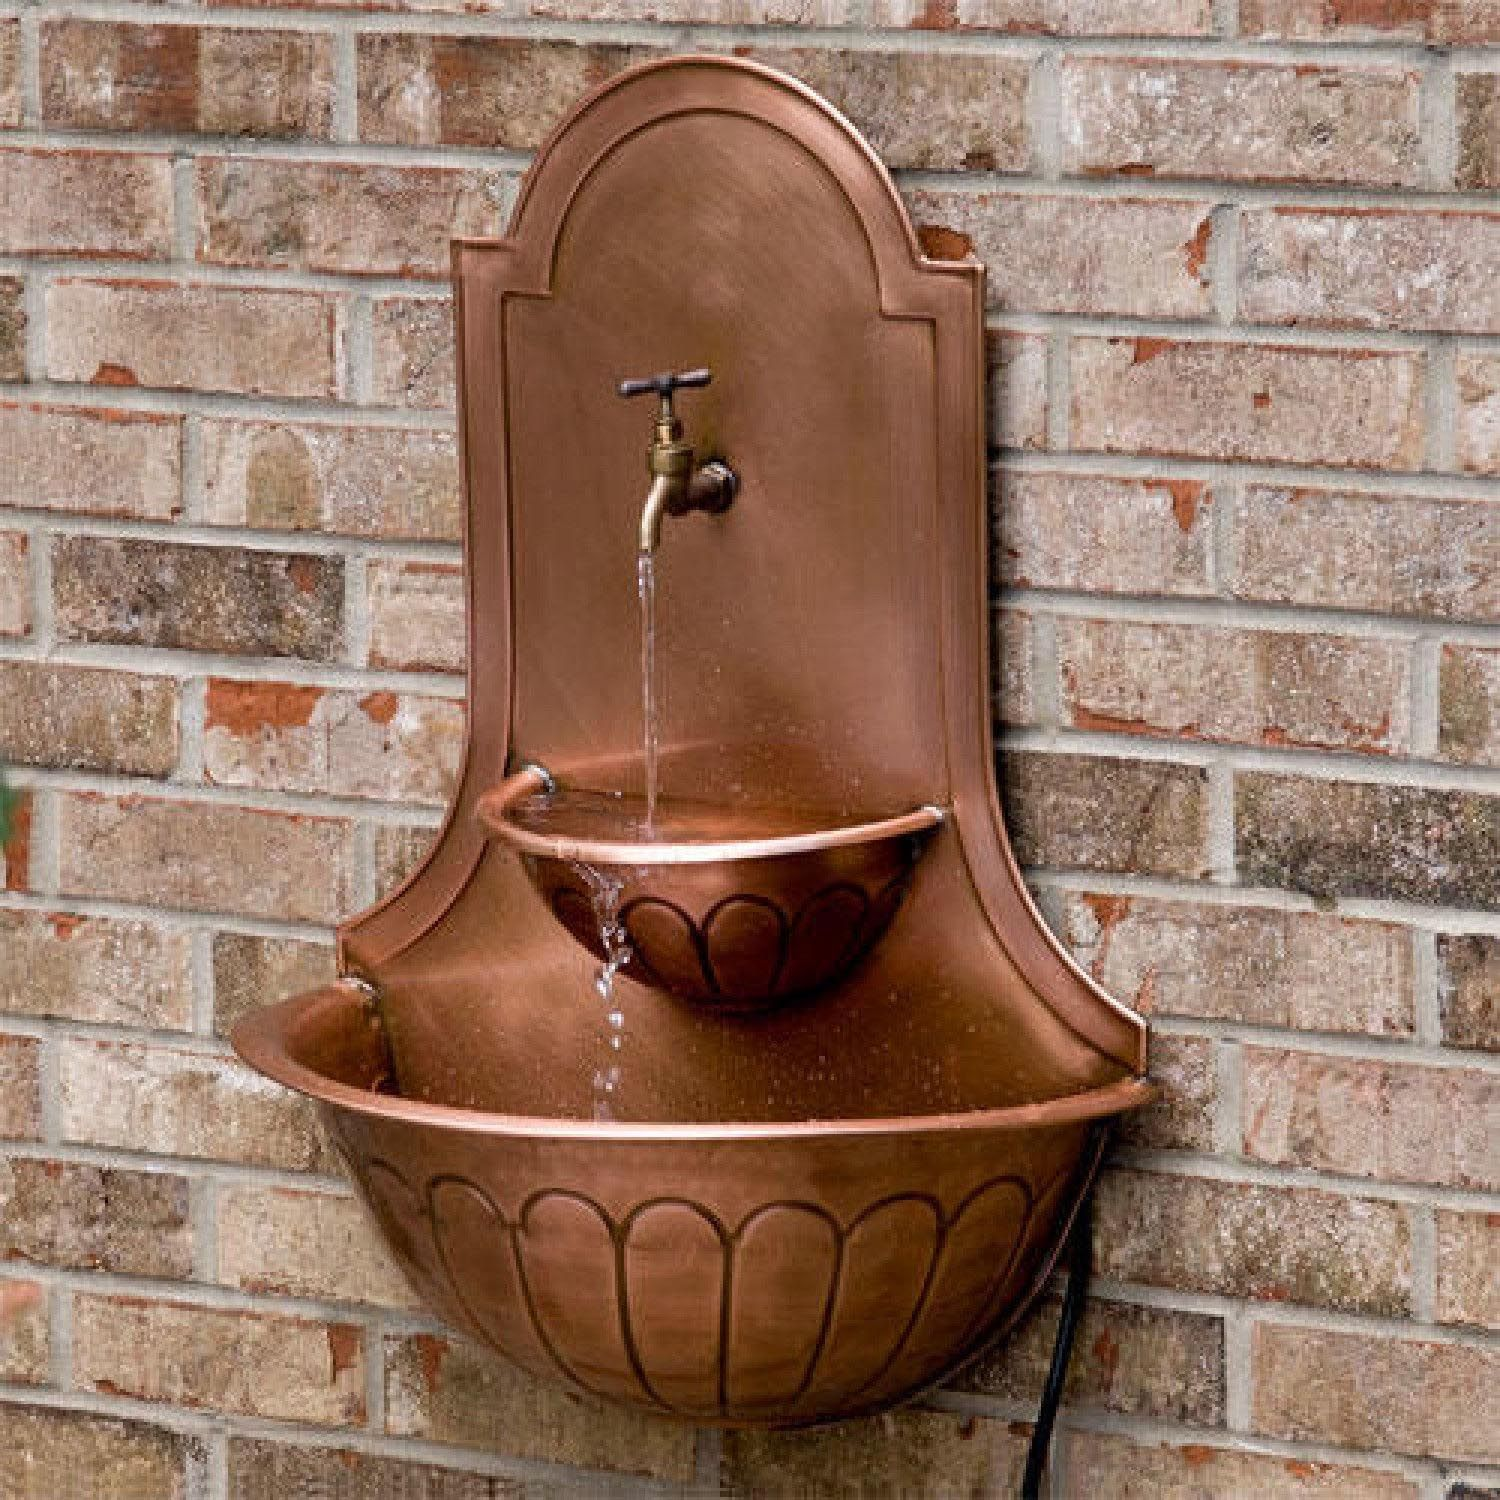 Copper Wall Fountain | Outdoor Fountains | Pinterest | Copper wall